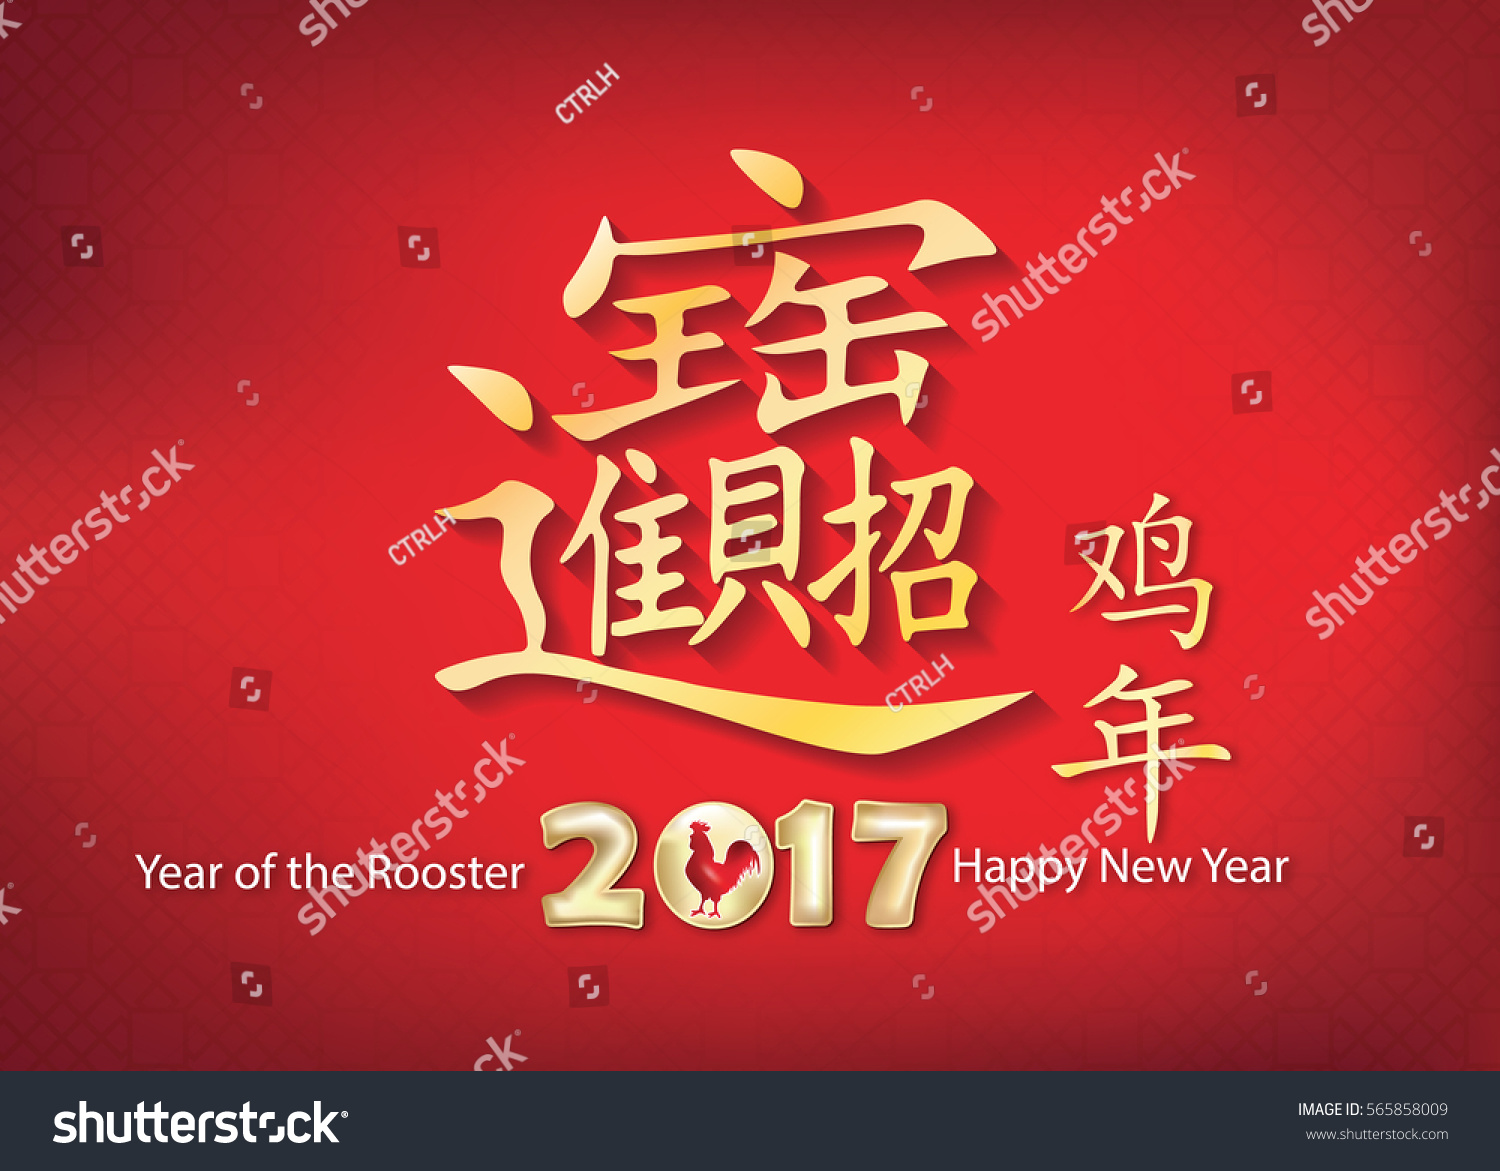 Simple Printable Greeting Card For Chinese New Year Of The Rooster